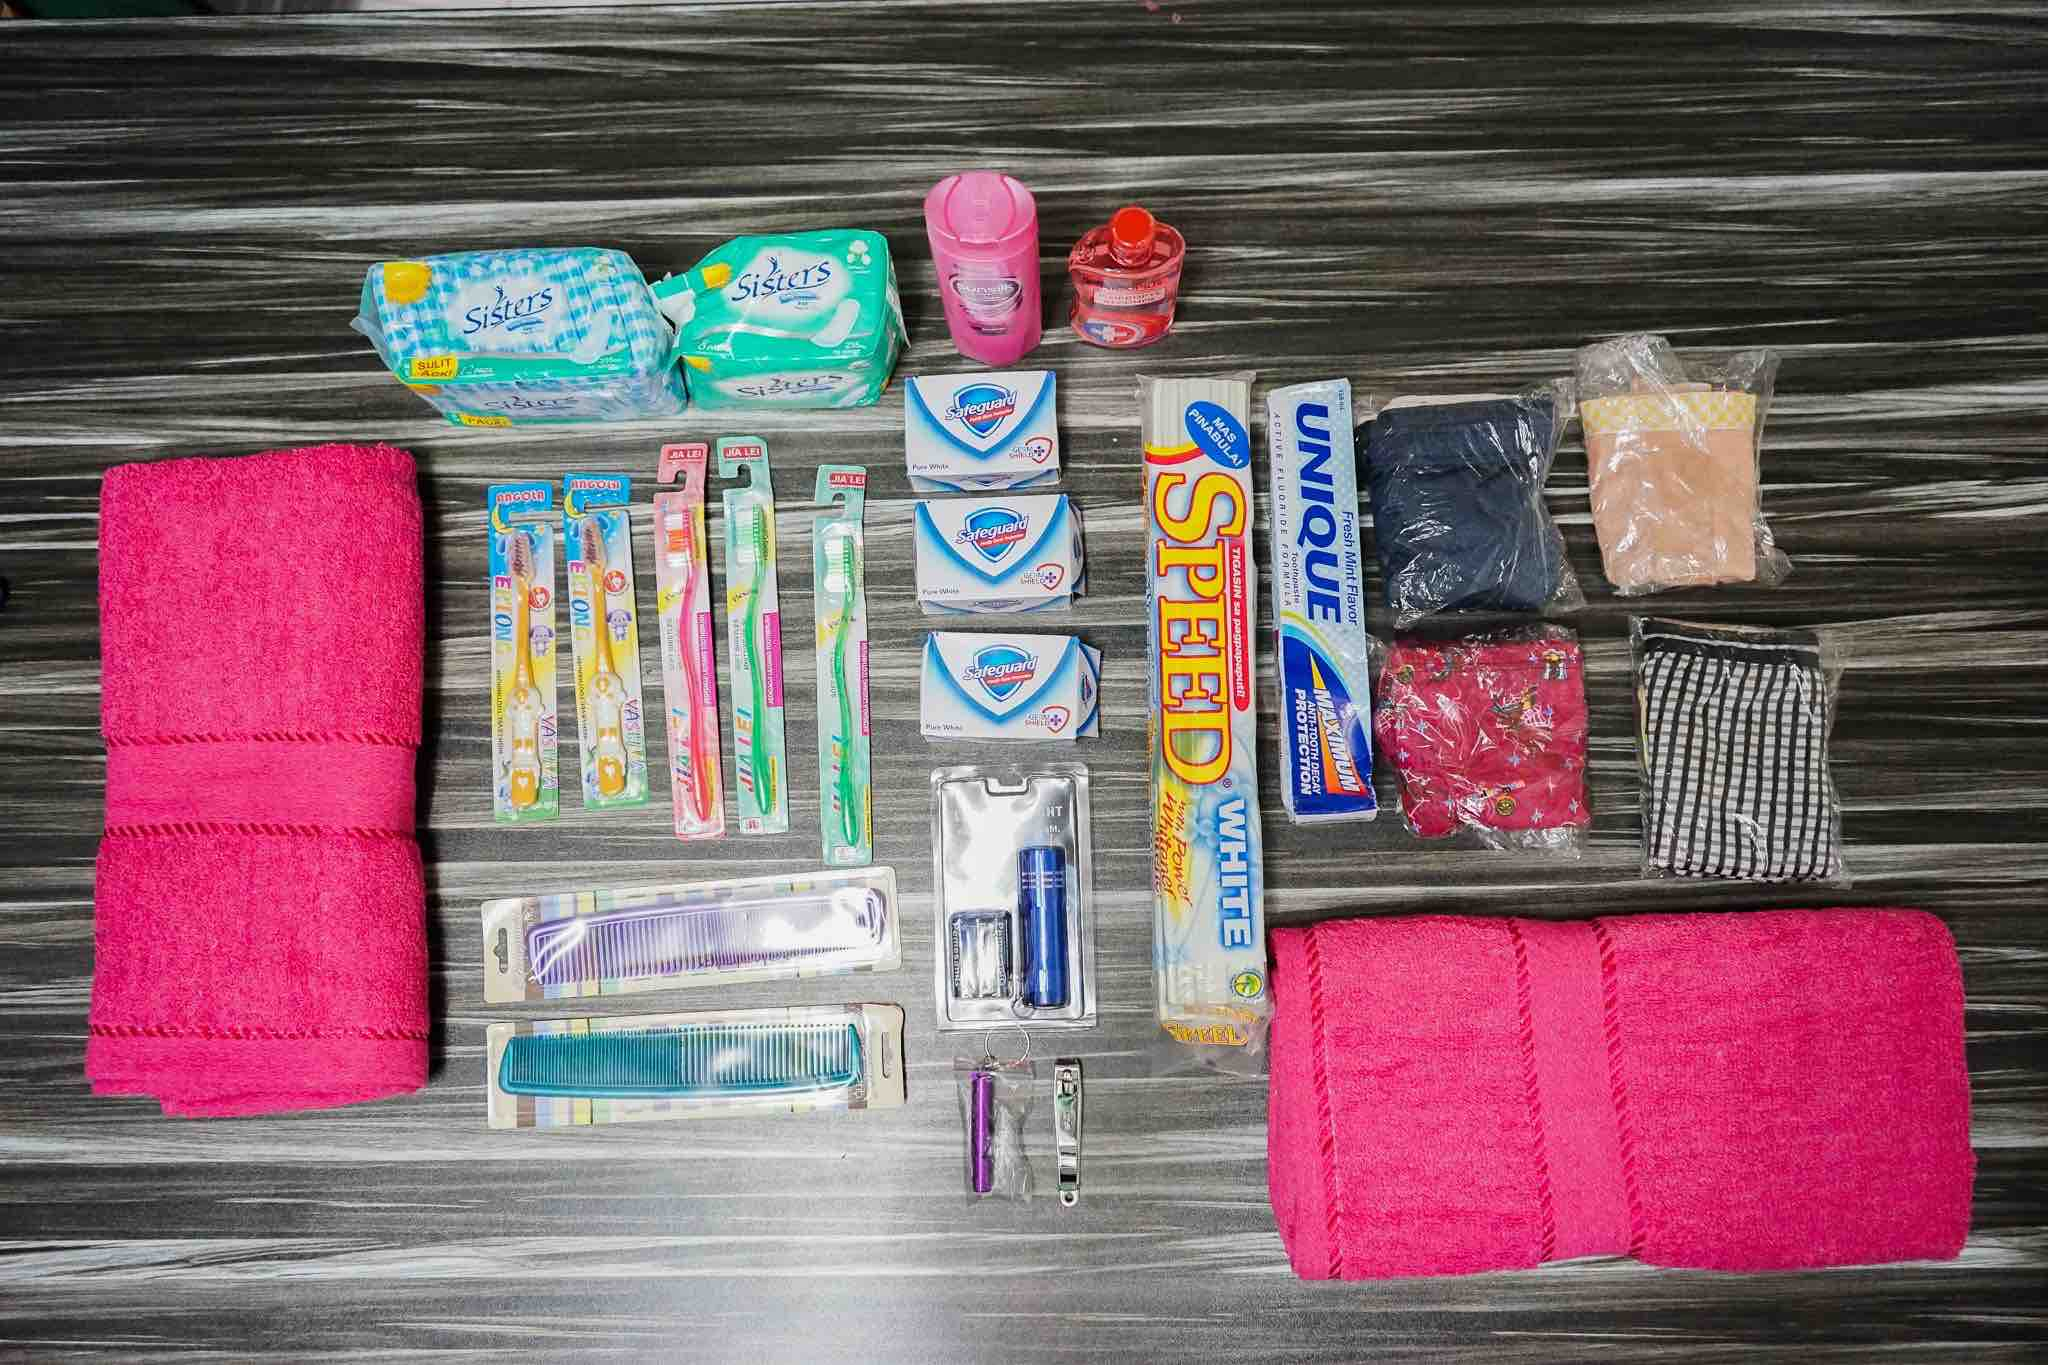 HYGIENE SUPPLIES. The DSWD will distribute dignity kits to families who are still staying in evacuation centers. Photo courtesy of DSWD